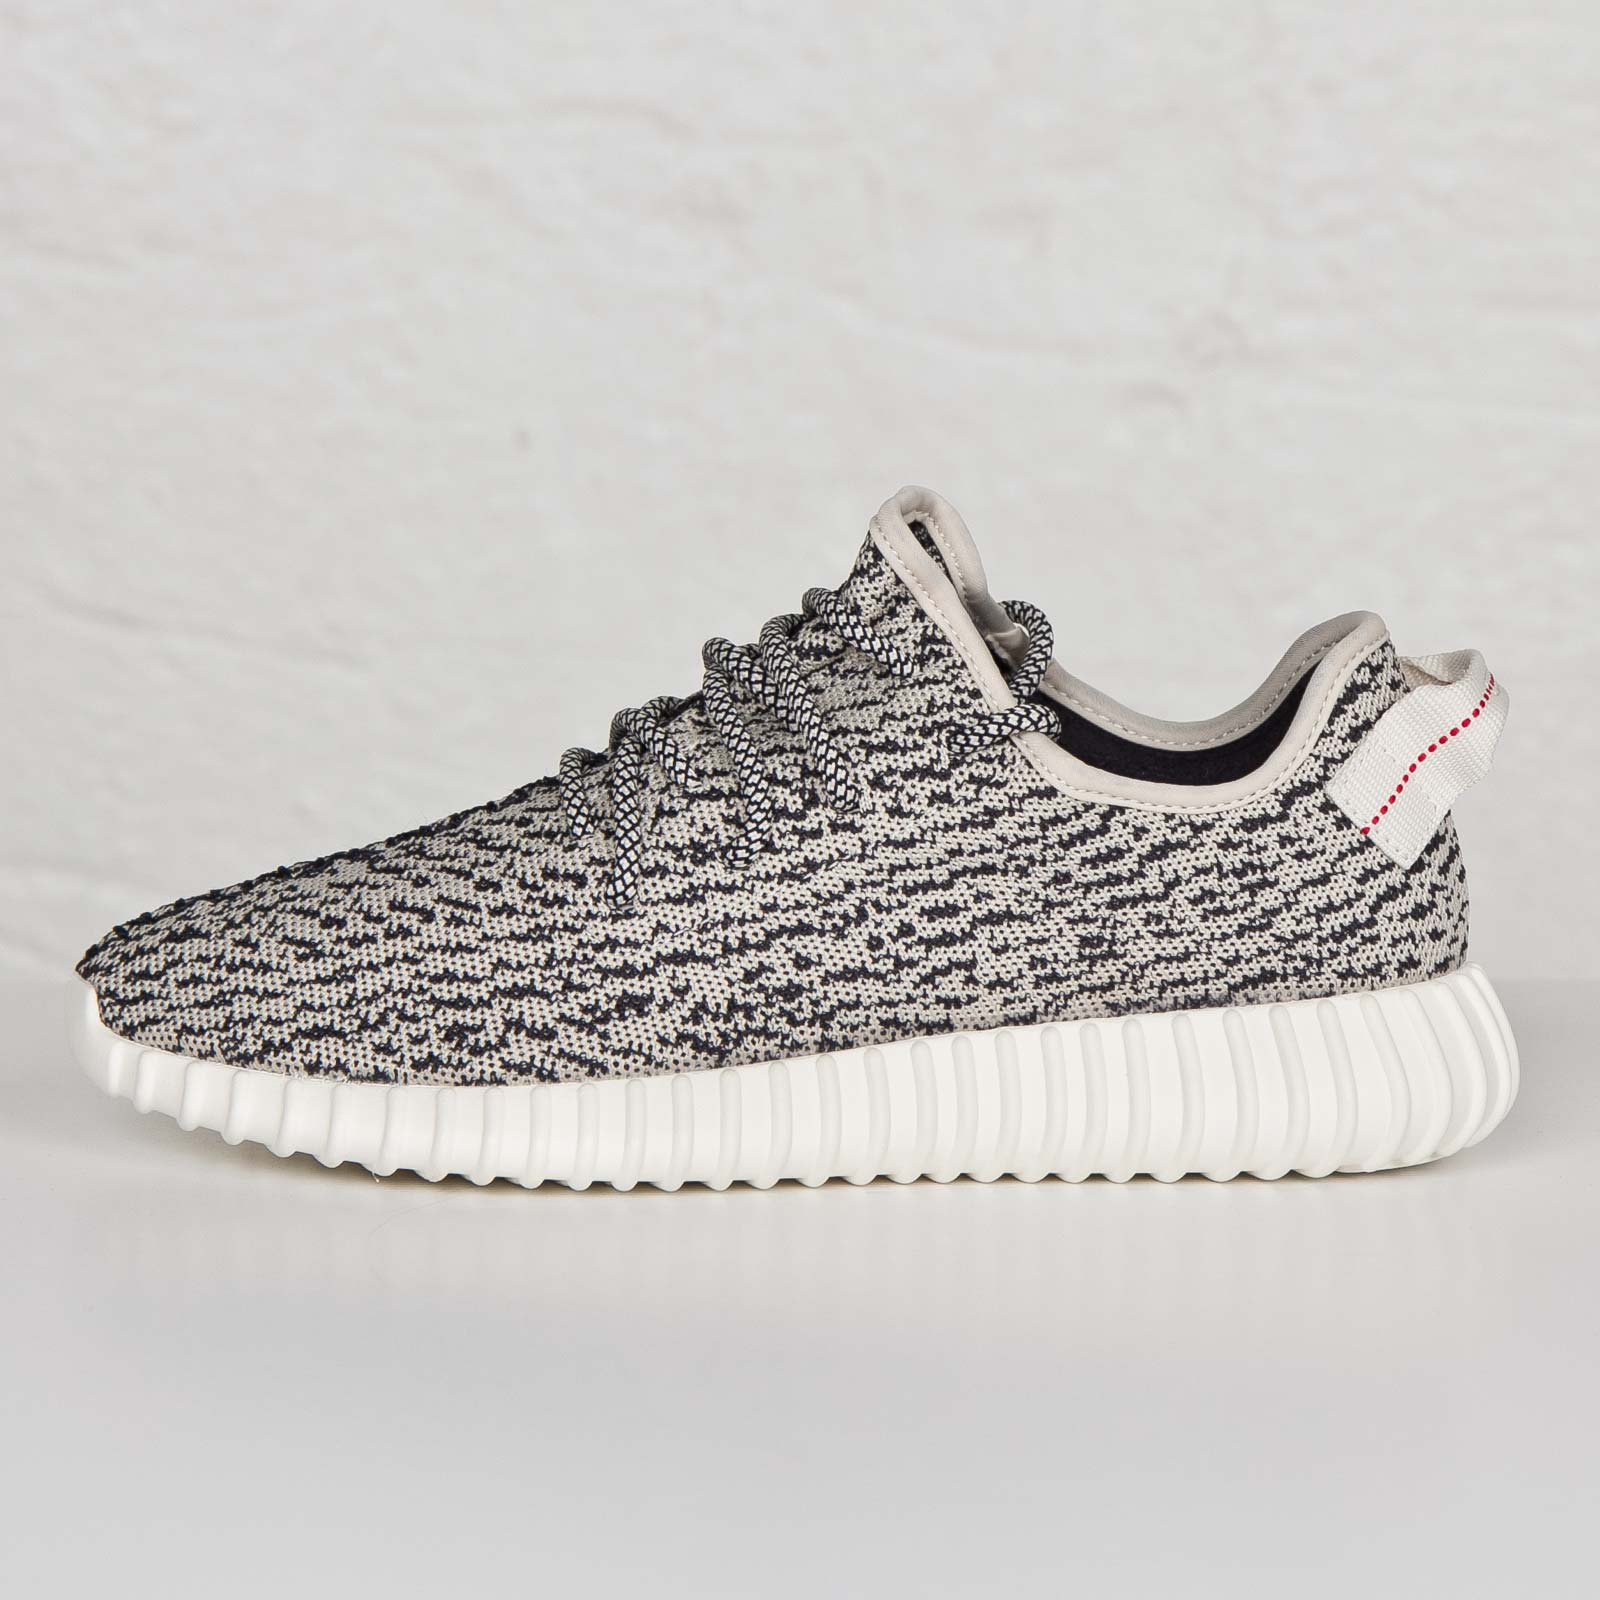 Adidas Originals Yeezy Boost dam